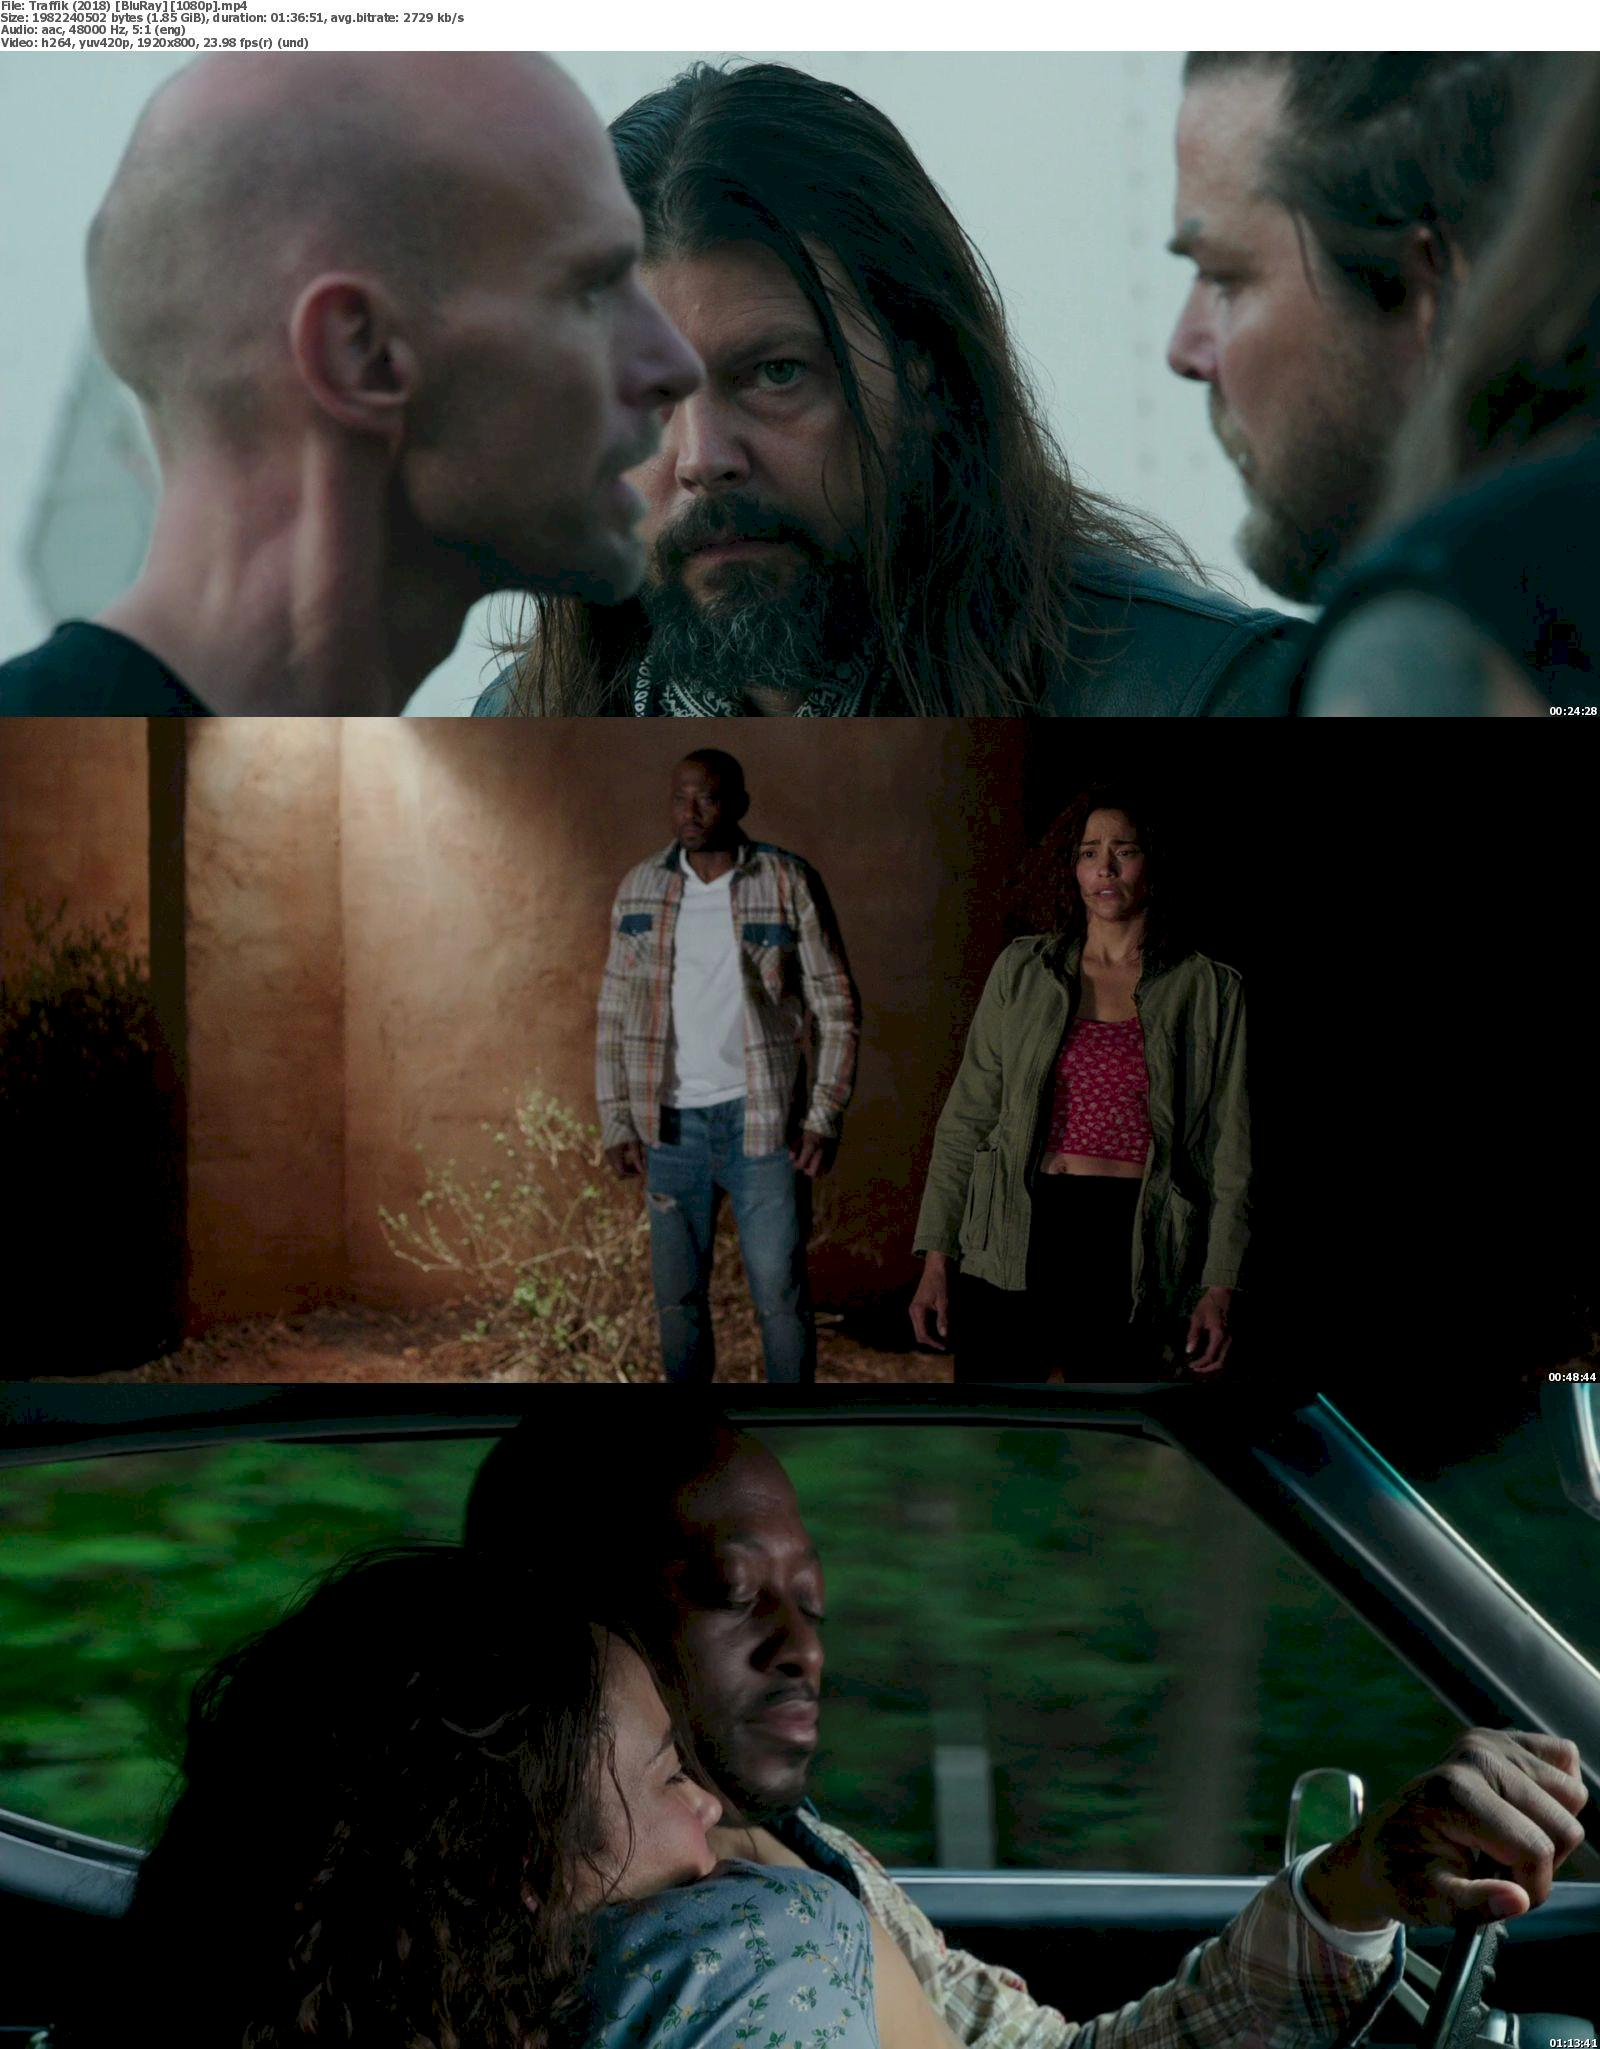 Traffik (2018) [720p & 1080p] Bluray Free Movies Watch Online 1080p Screenshot